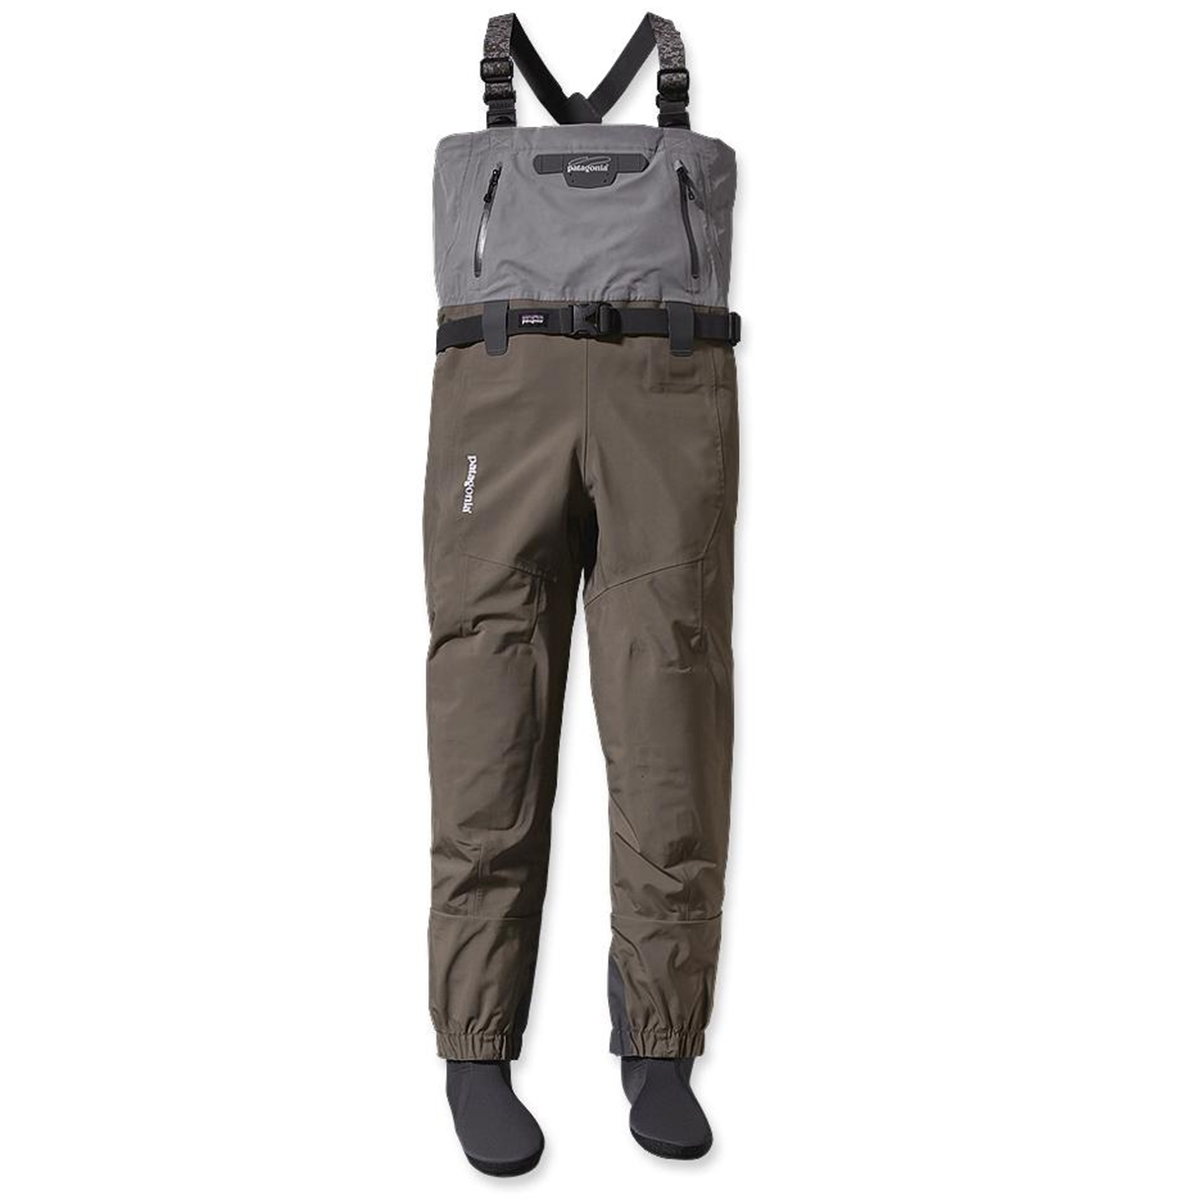 Patagonia rio gallegos waders fishing waders chest hip for Fly fishing waders